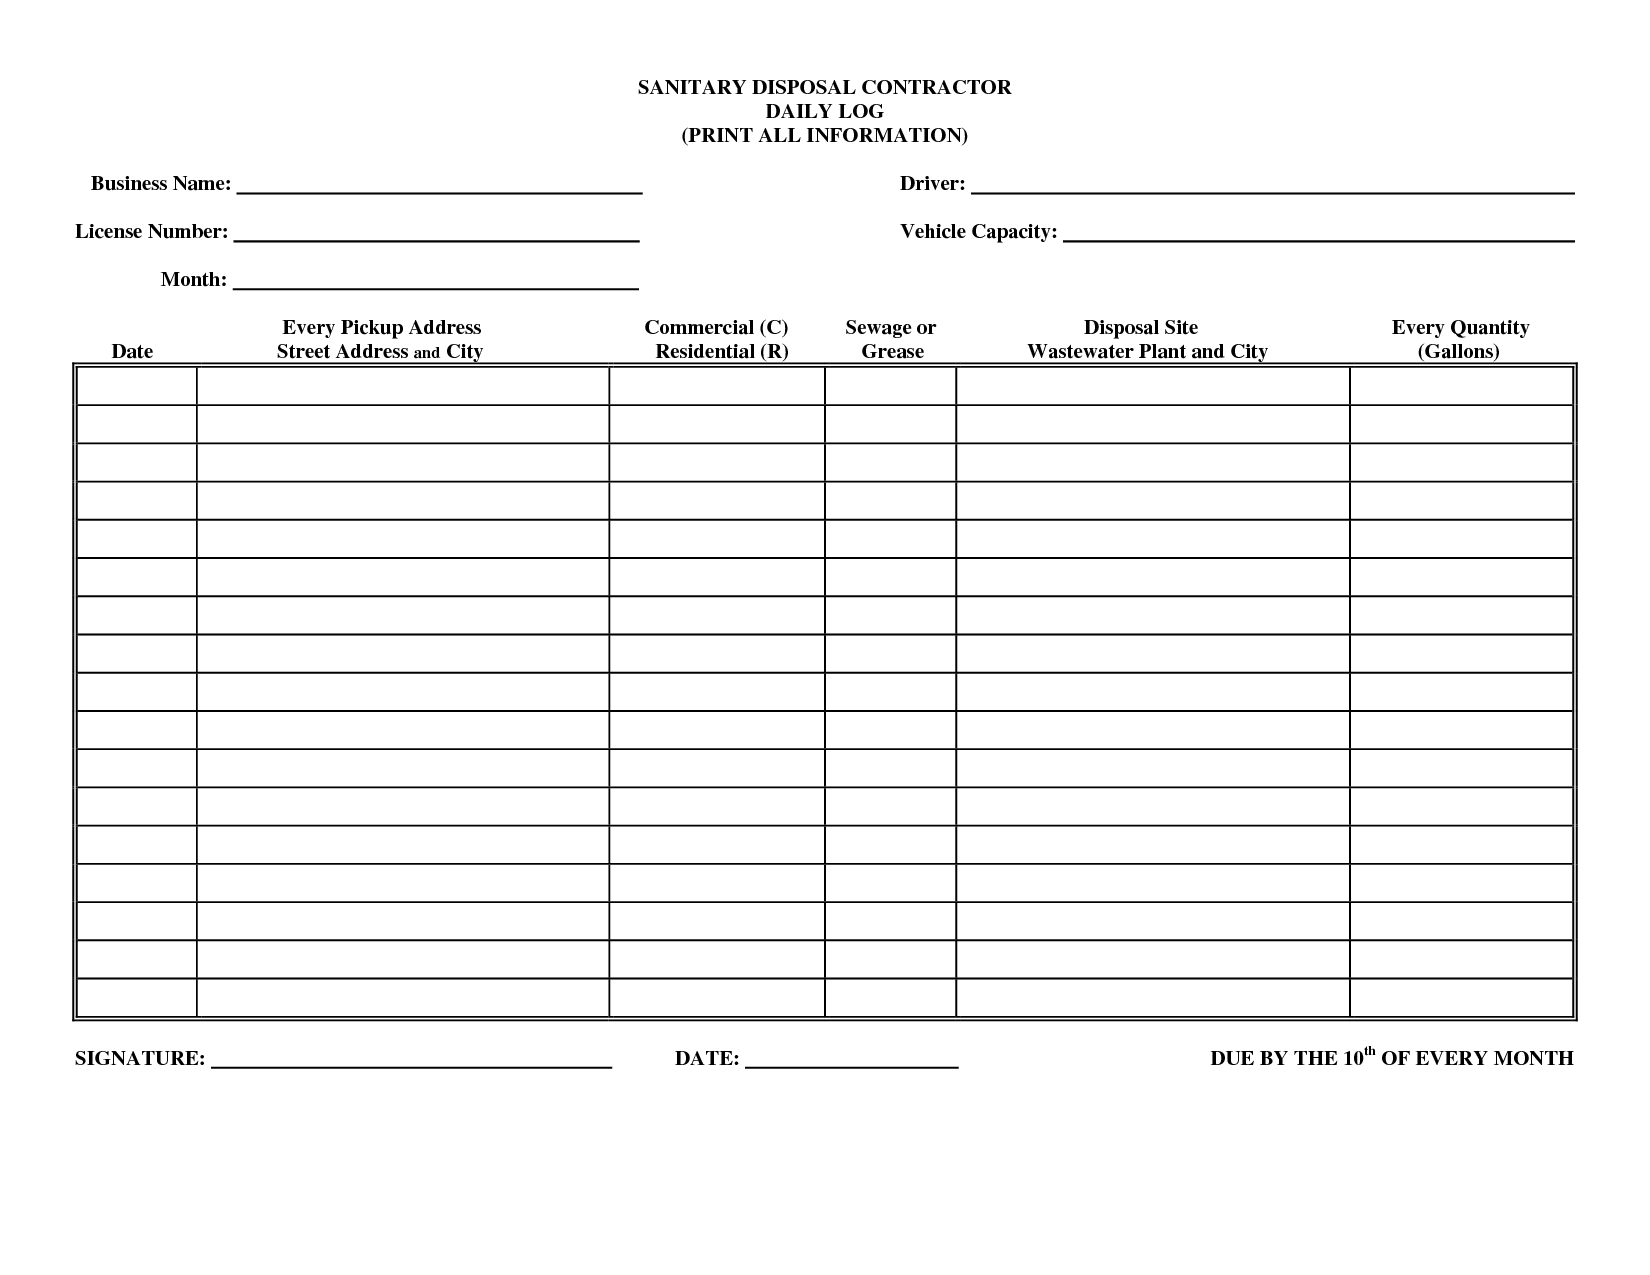 driver daily log sheet template | business forms | Pinterest ...